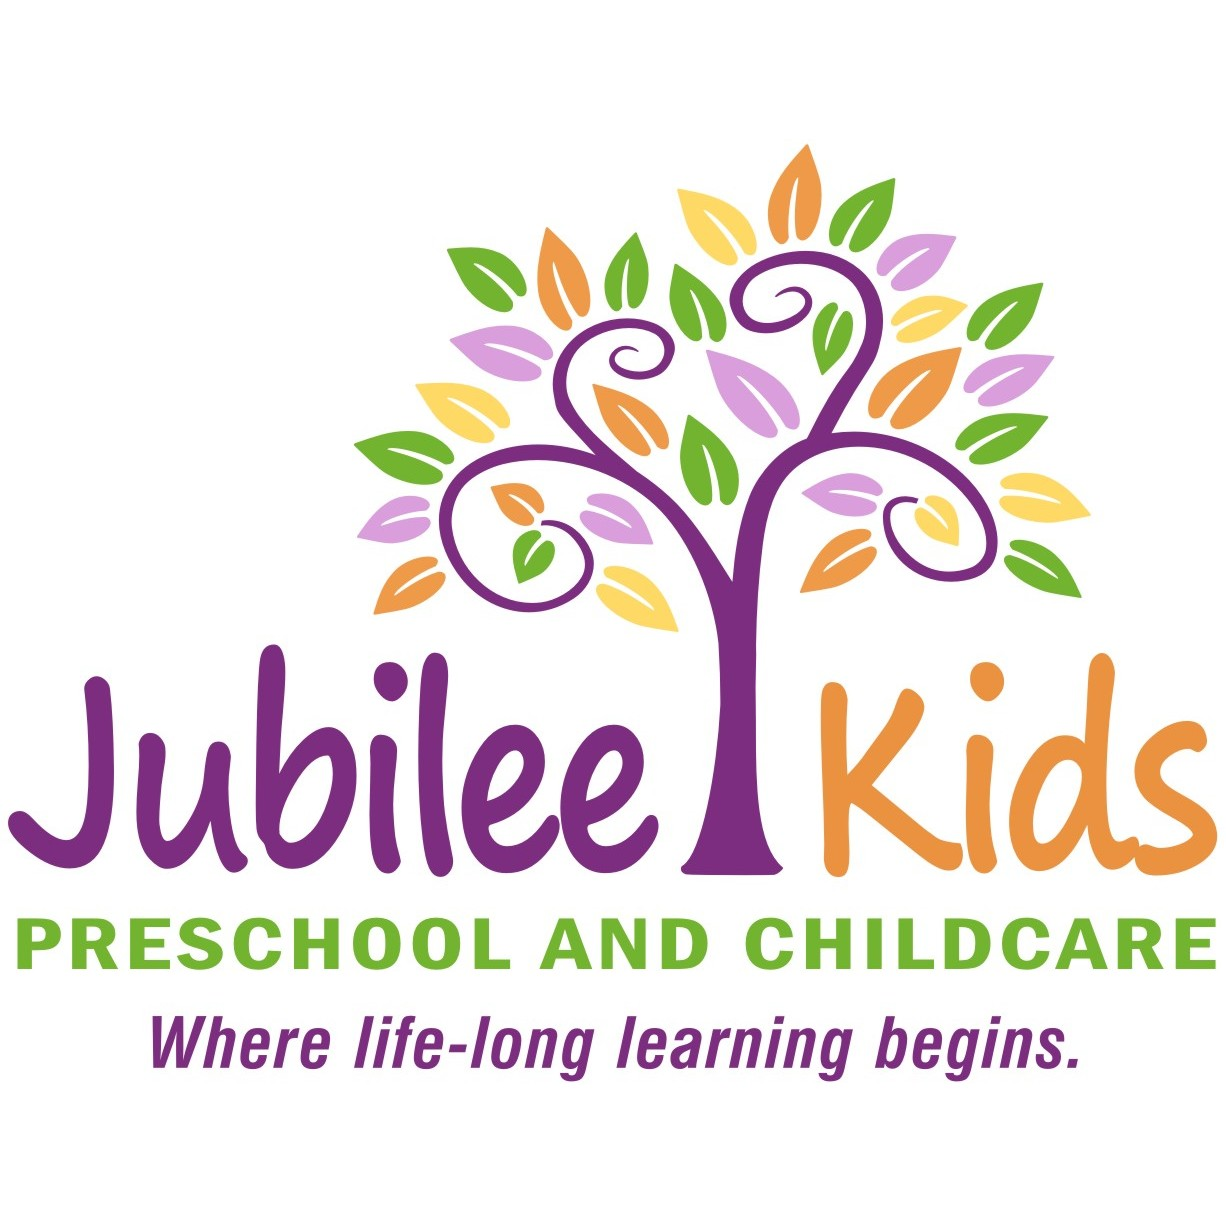 Jubilee Kids Preschool and Child Care